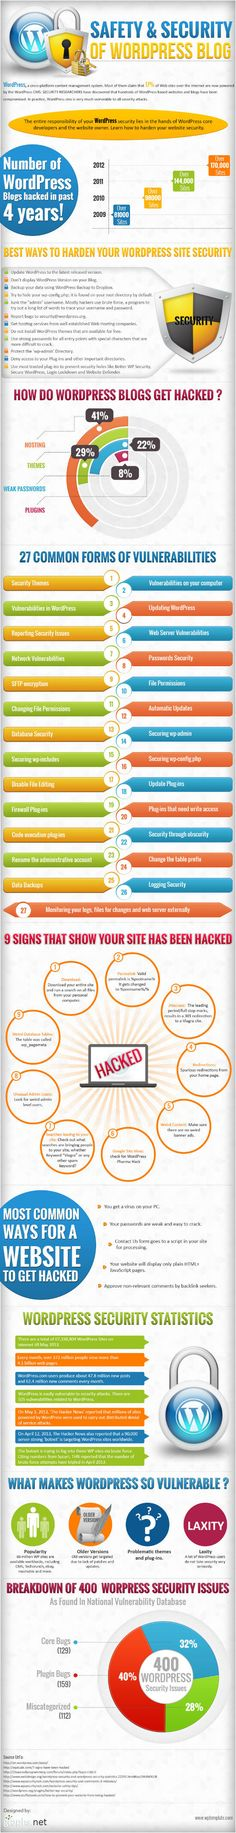 At A Glance: How To Secure Your WordPress Site